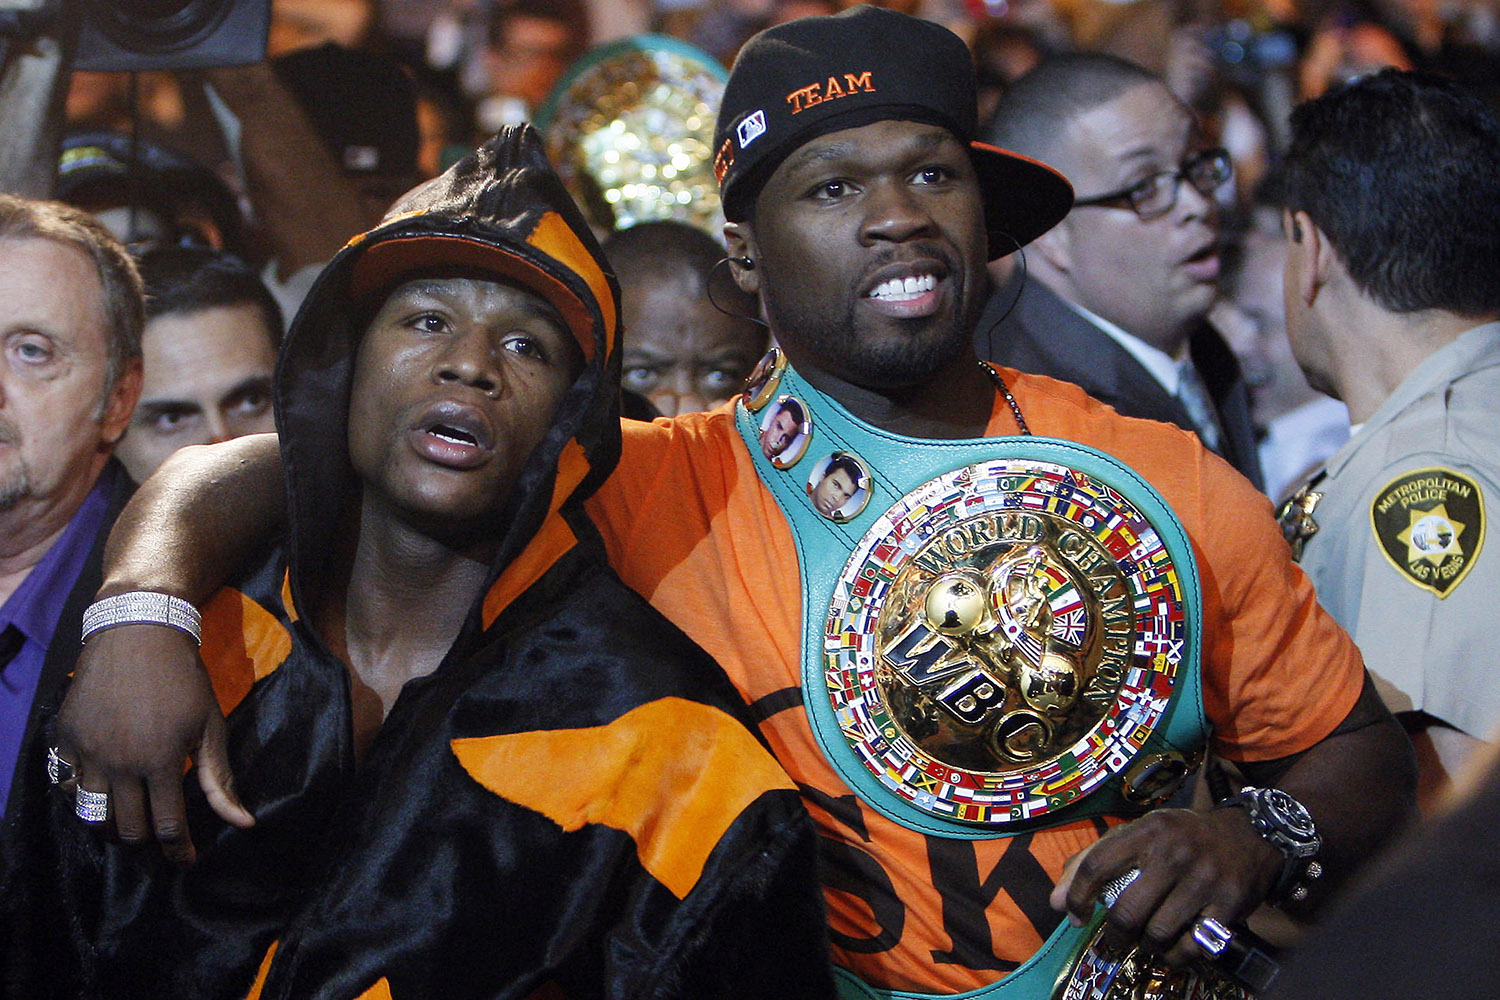 Ring Entrance: Floyd Mayweather Jr & 50 Cent